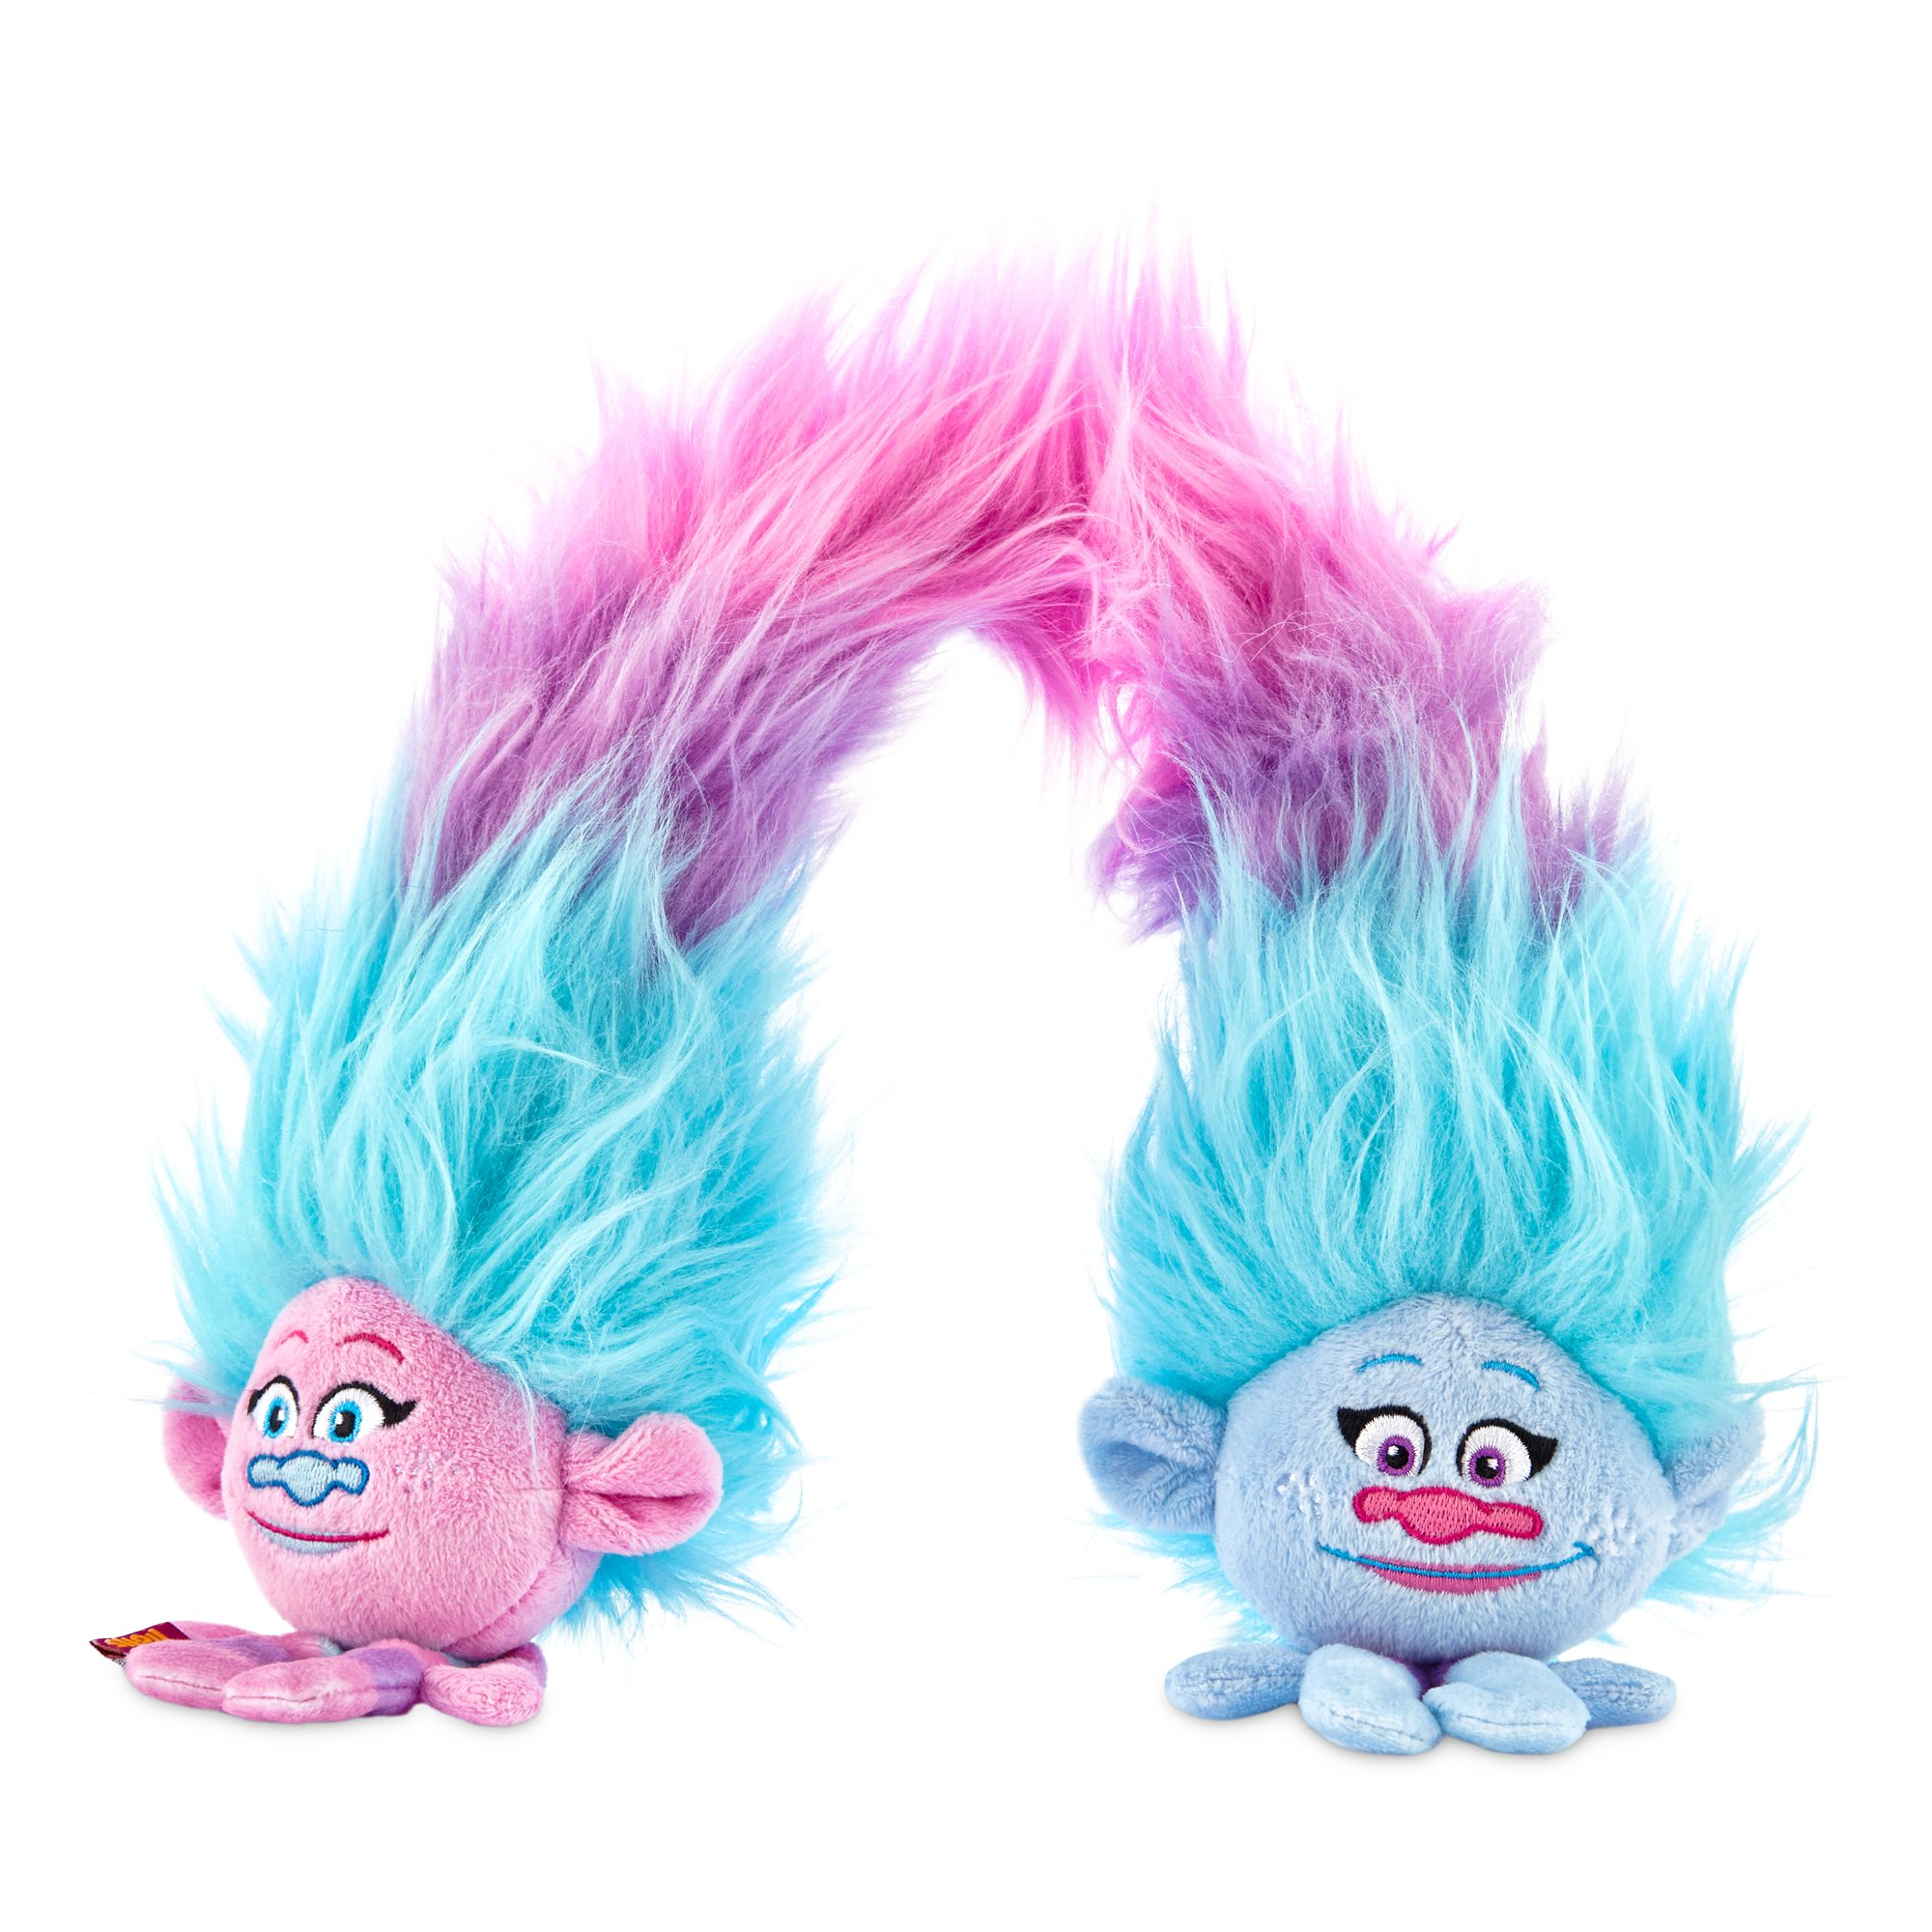 Trolls Satin and Chenille Plush Large Dog Toy